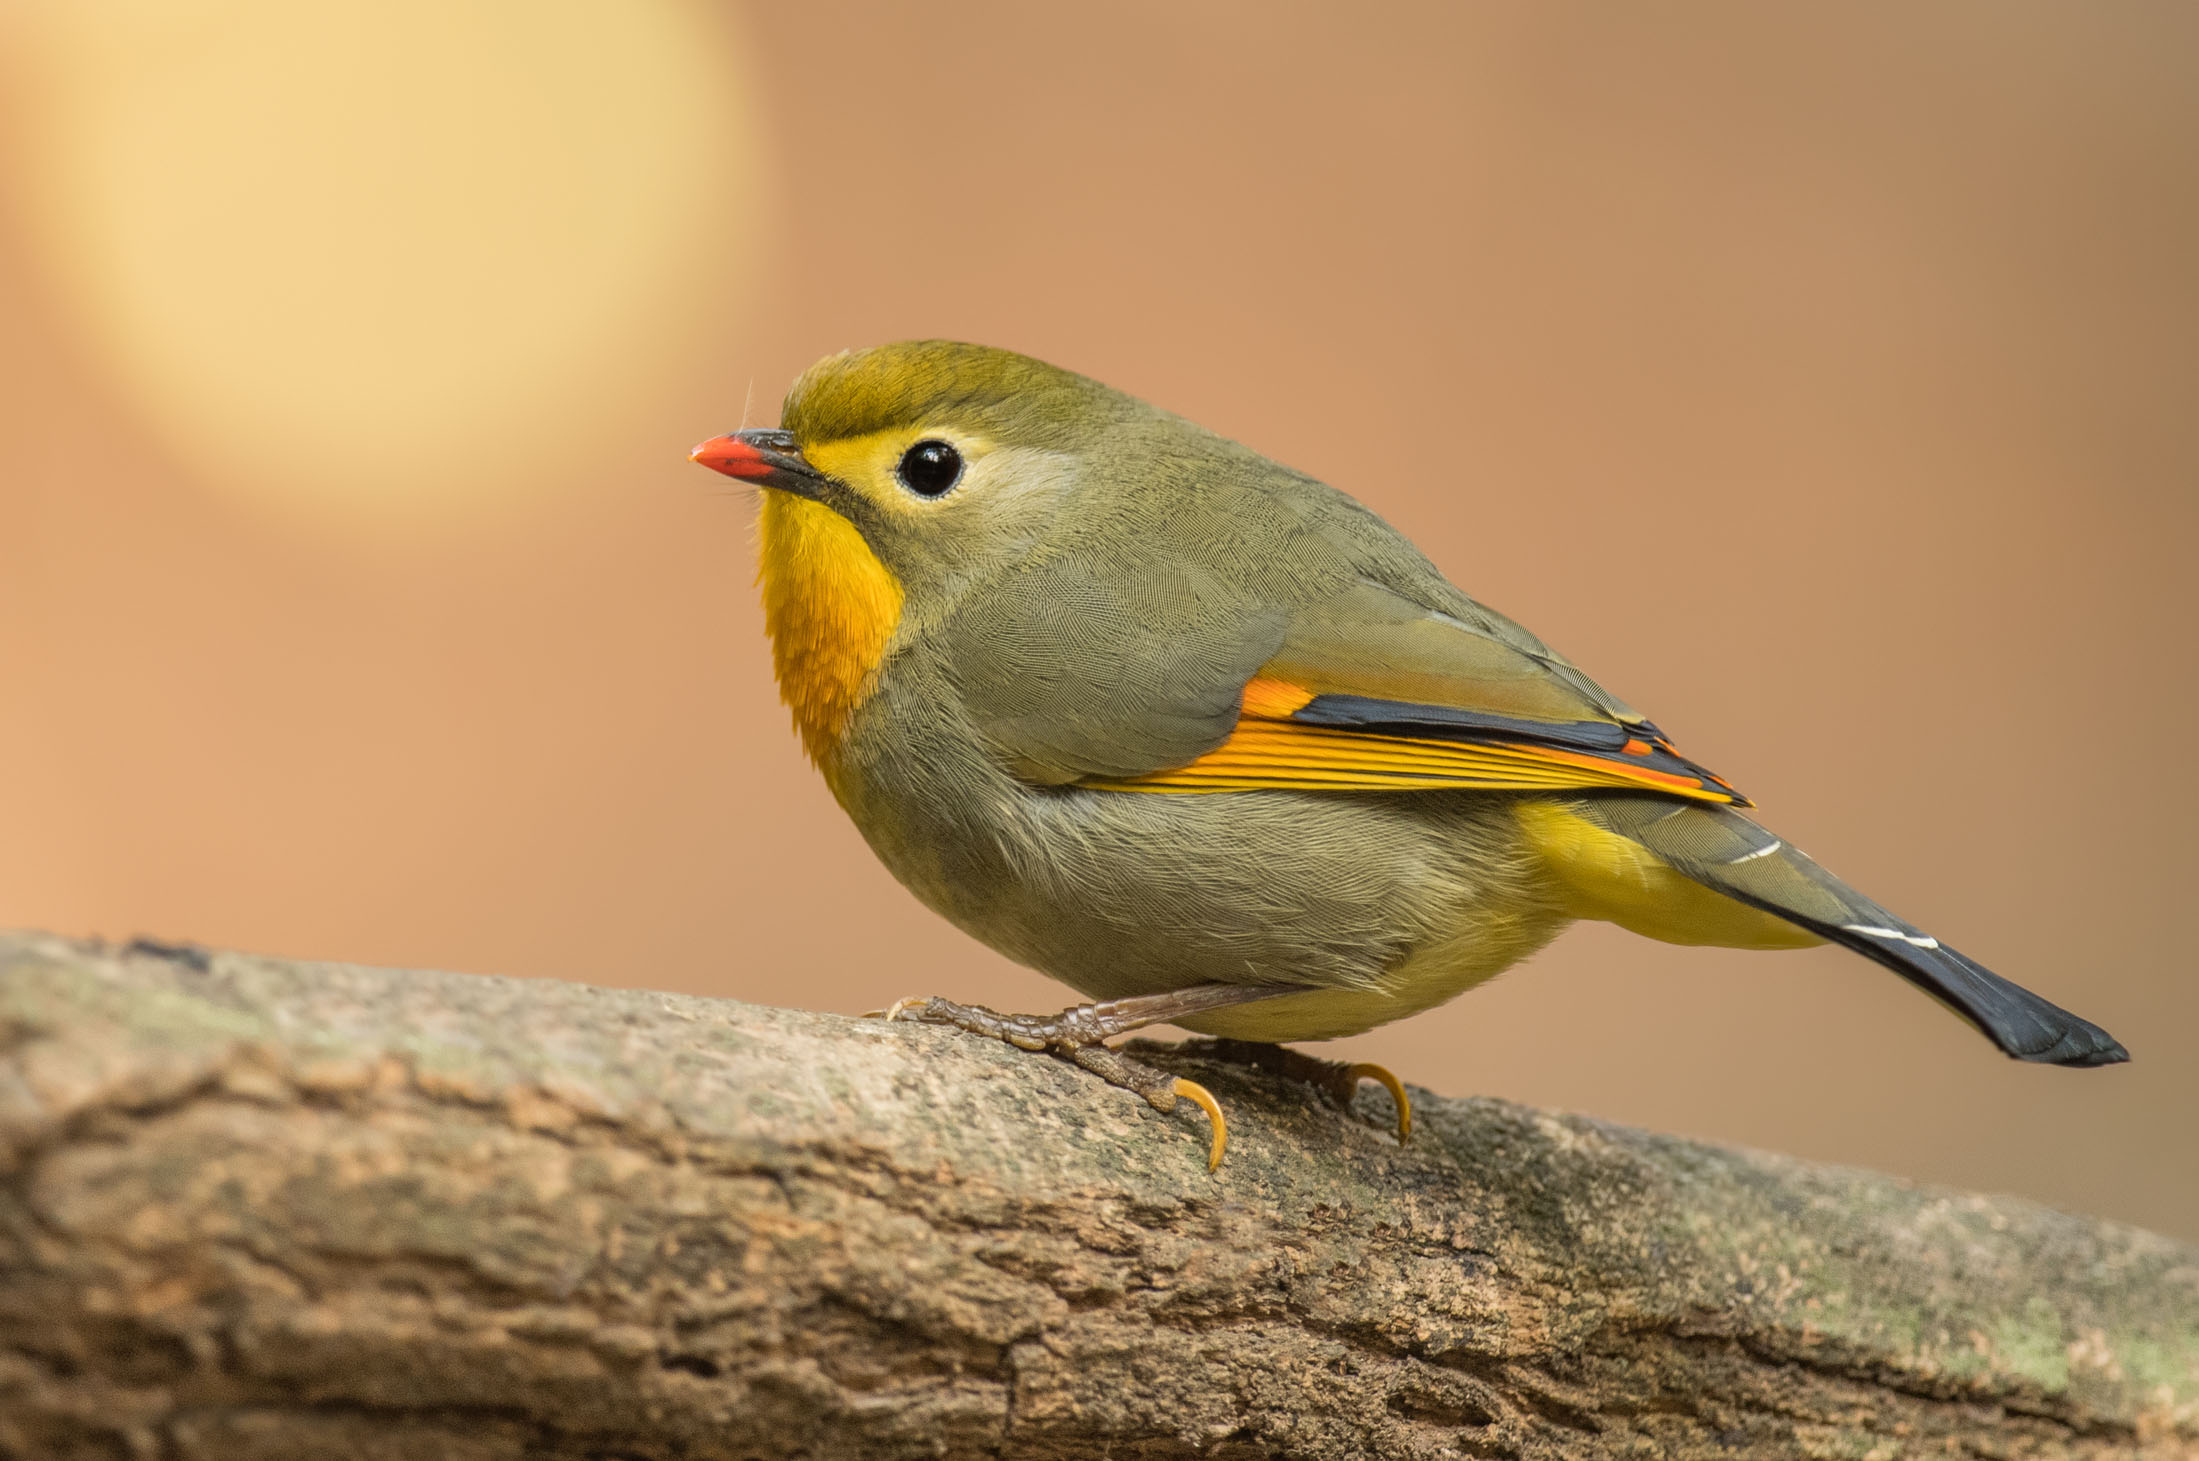 Attract More Birds in Your Garden by Feeding Them with Niger Seeds